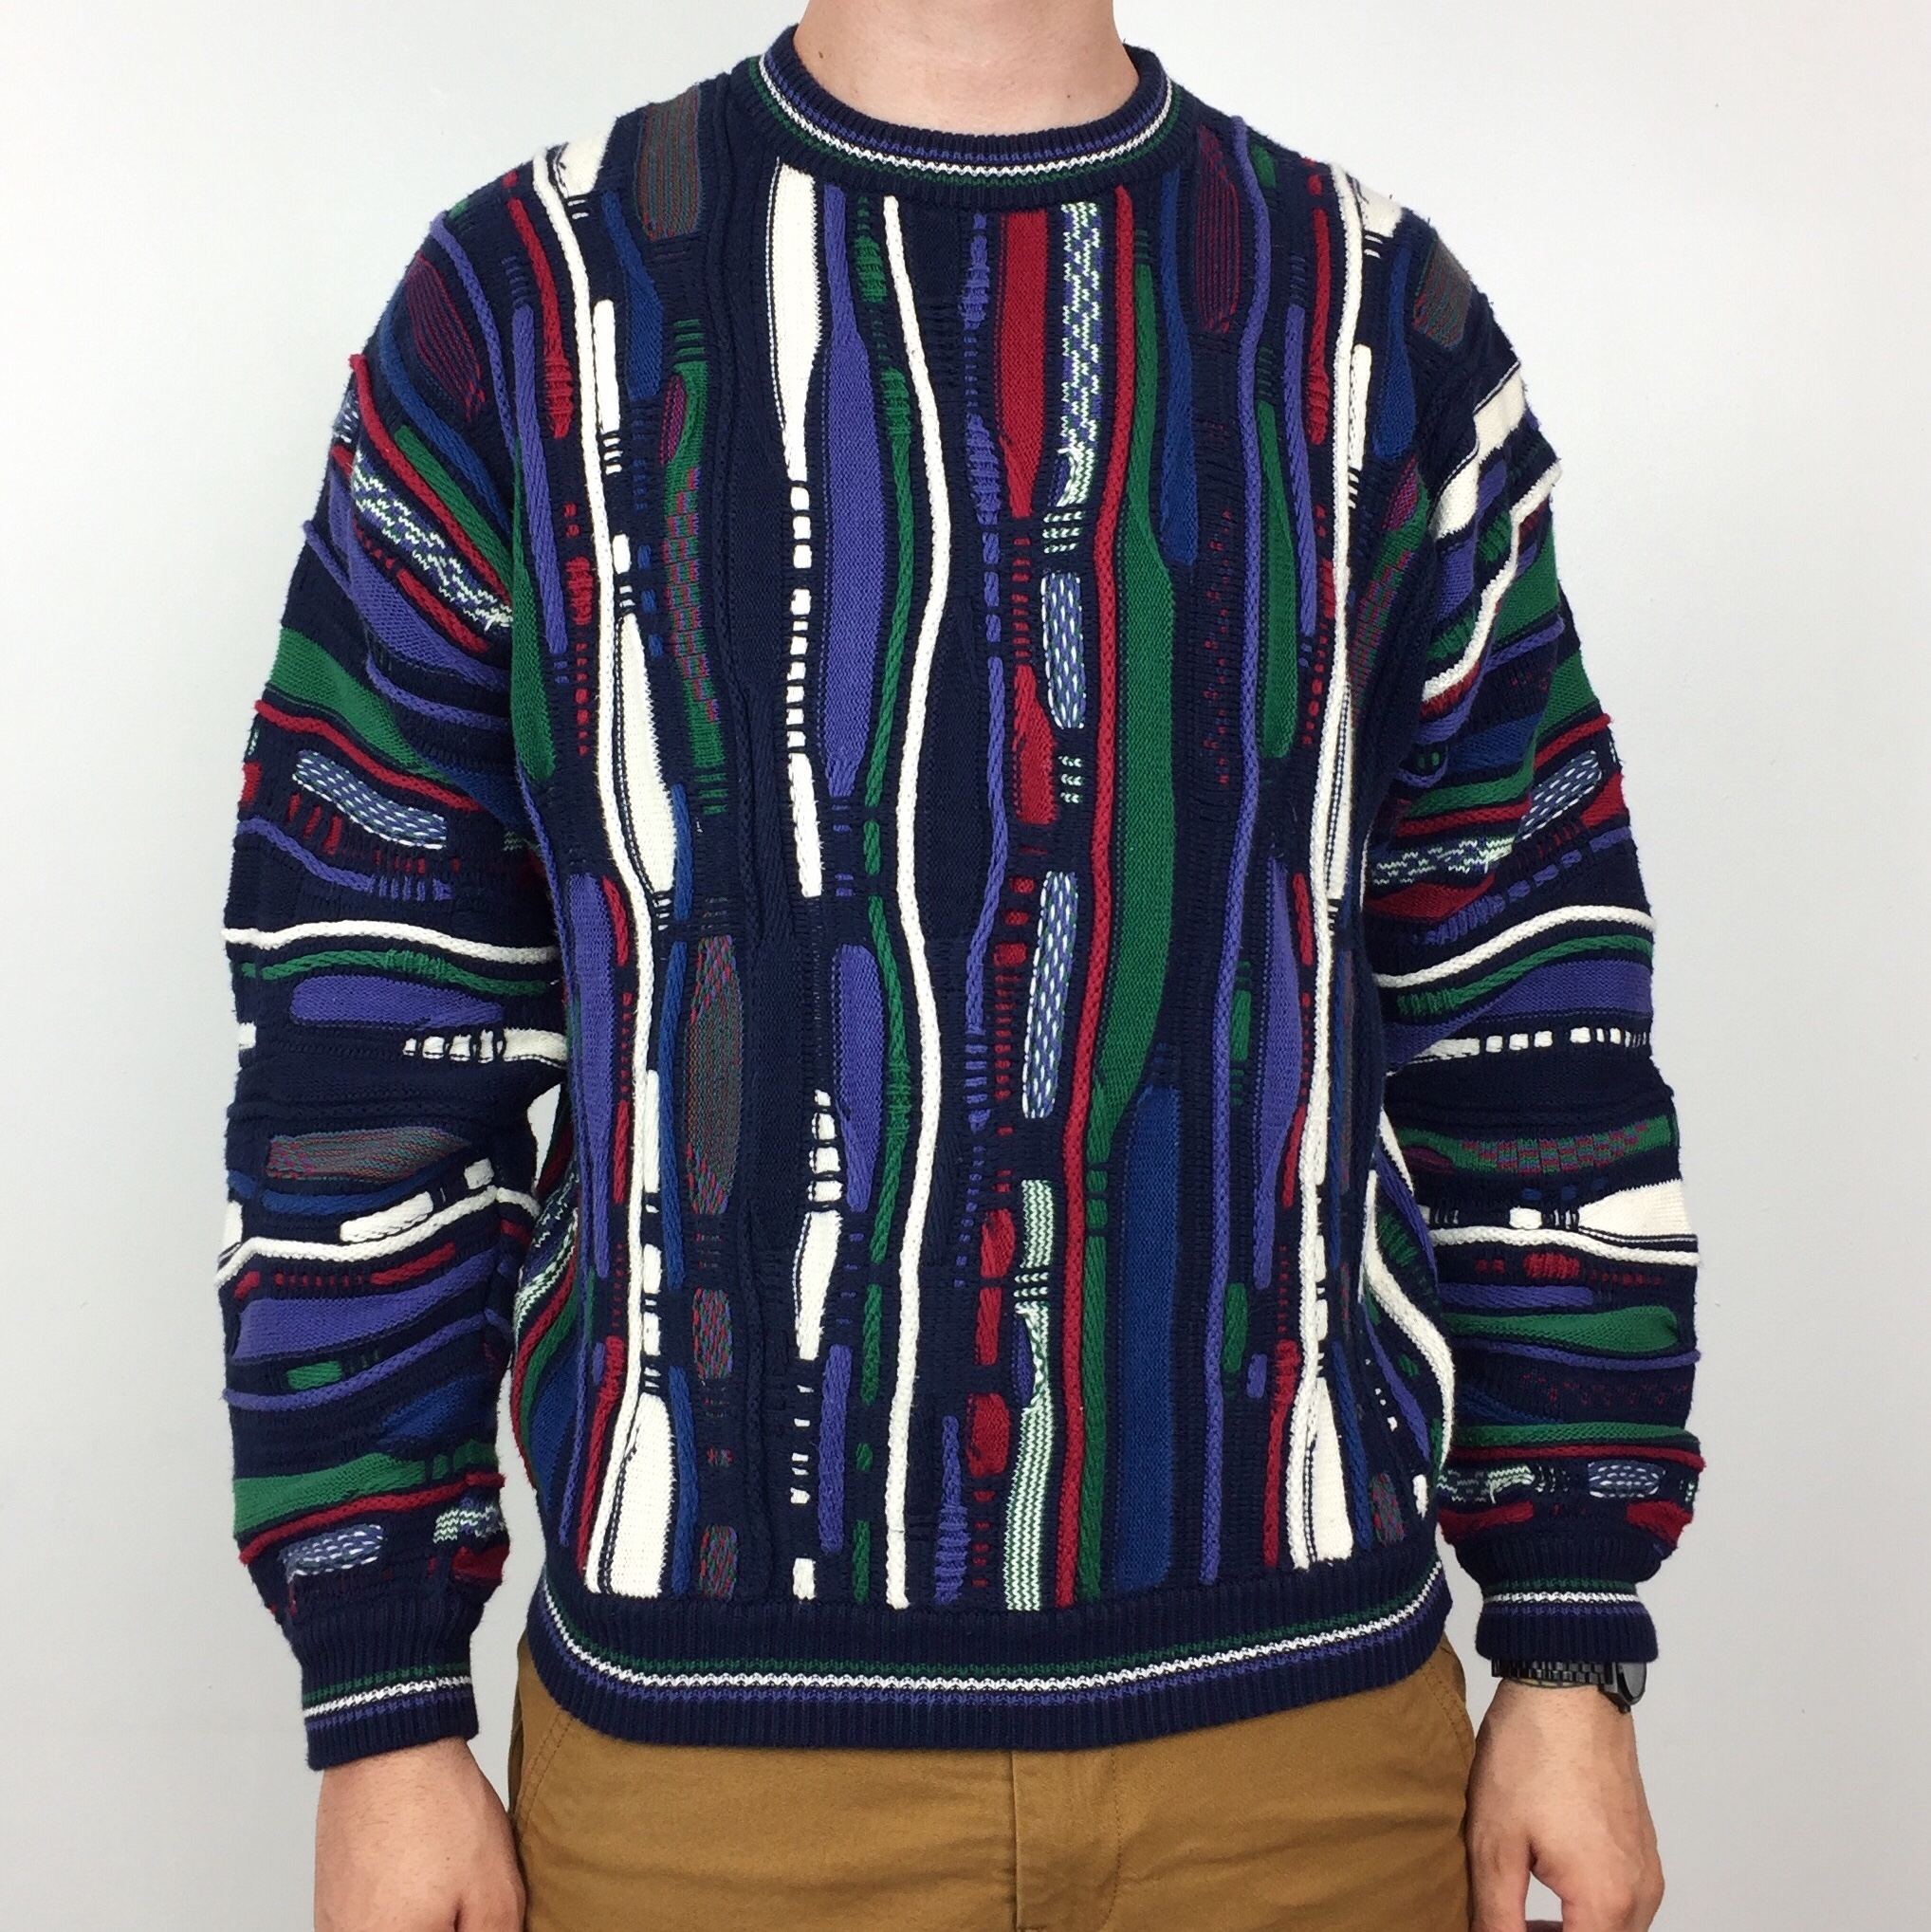 Vintage 90s North Wales Coogi inspired style Depop